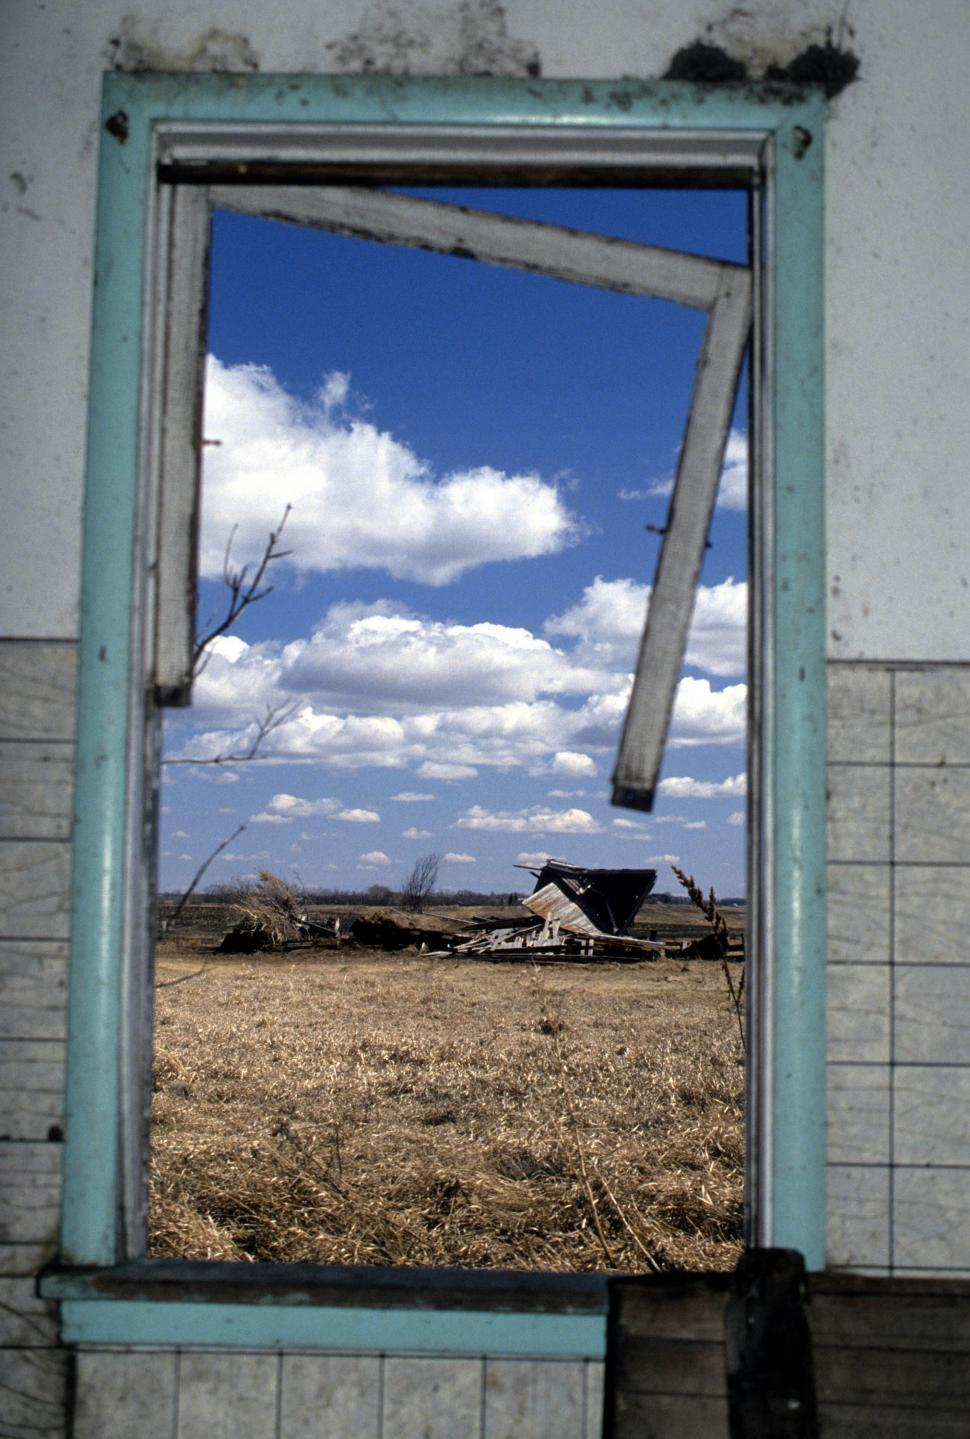 Download Free Stock Photo of Dilapidated window